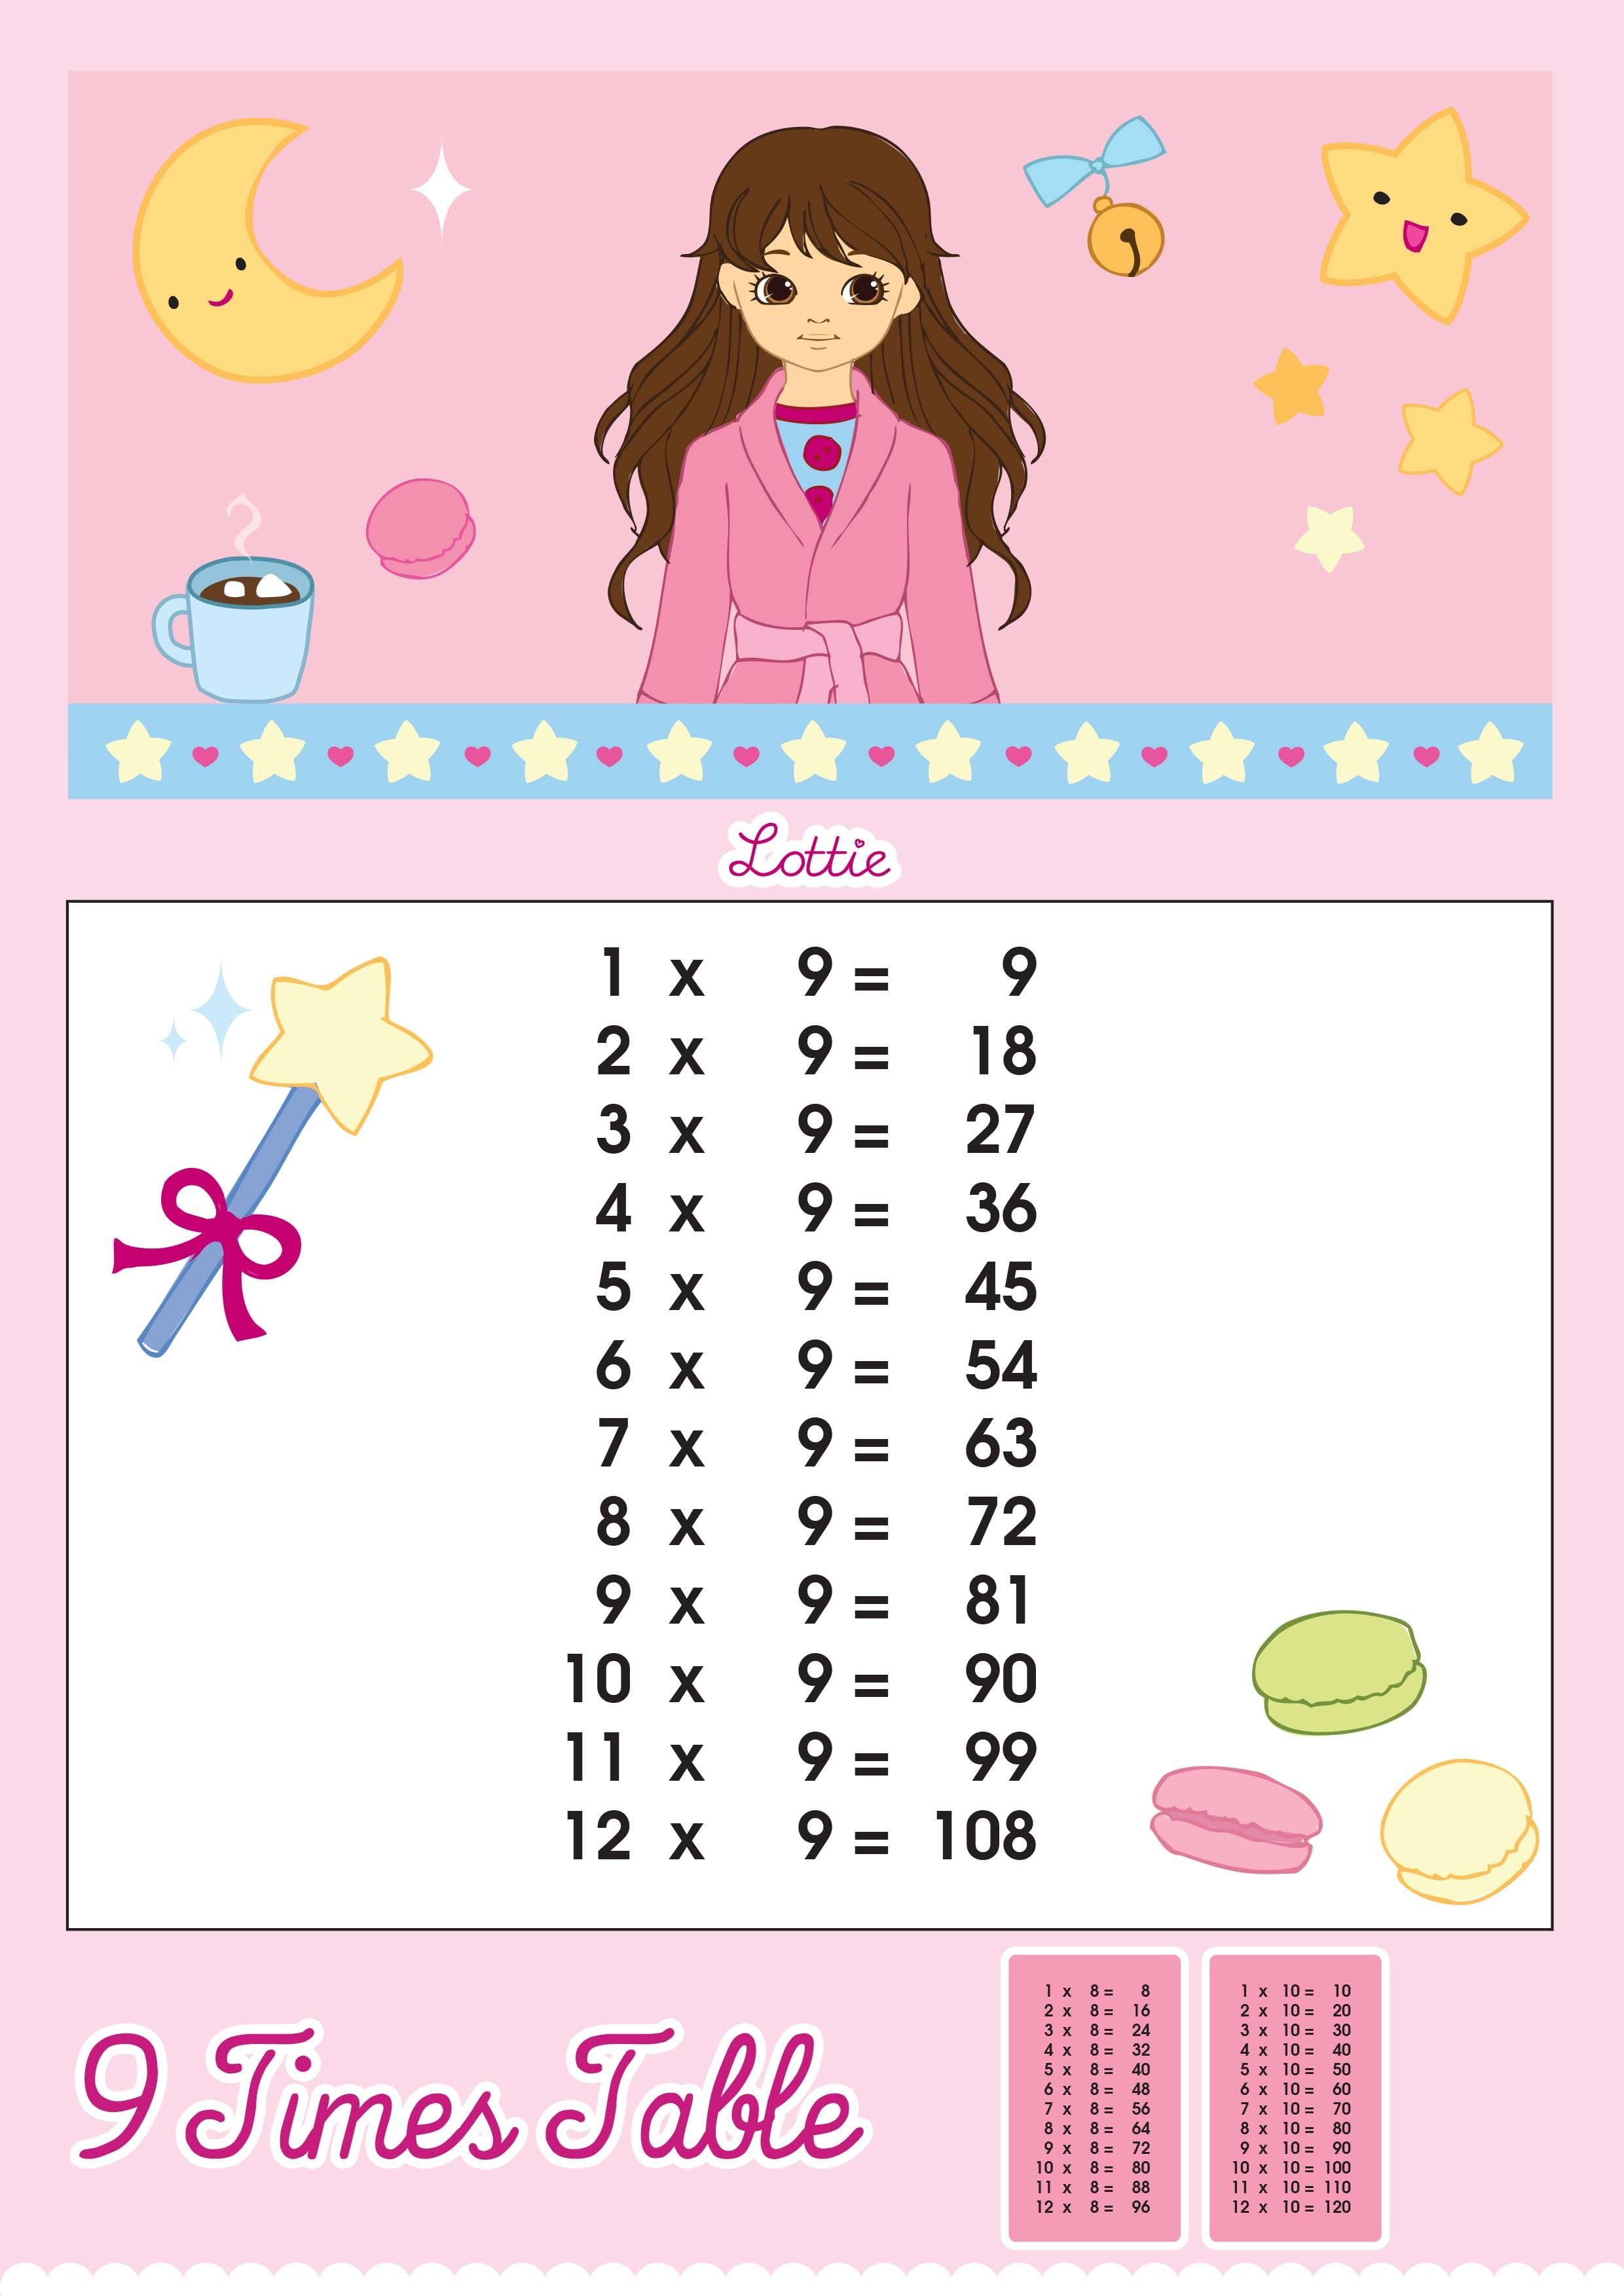 Lottie Doll Printable 9 Times Tables 2 480 3 507